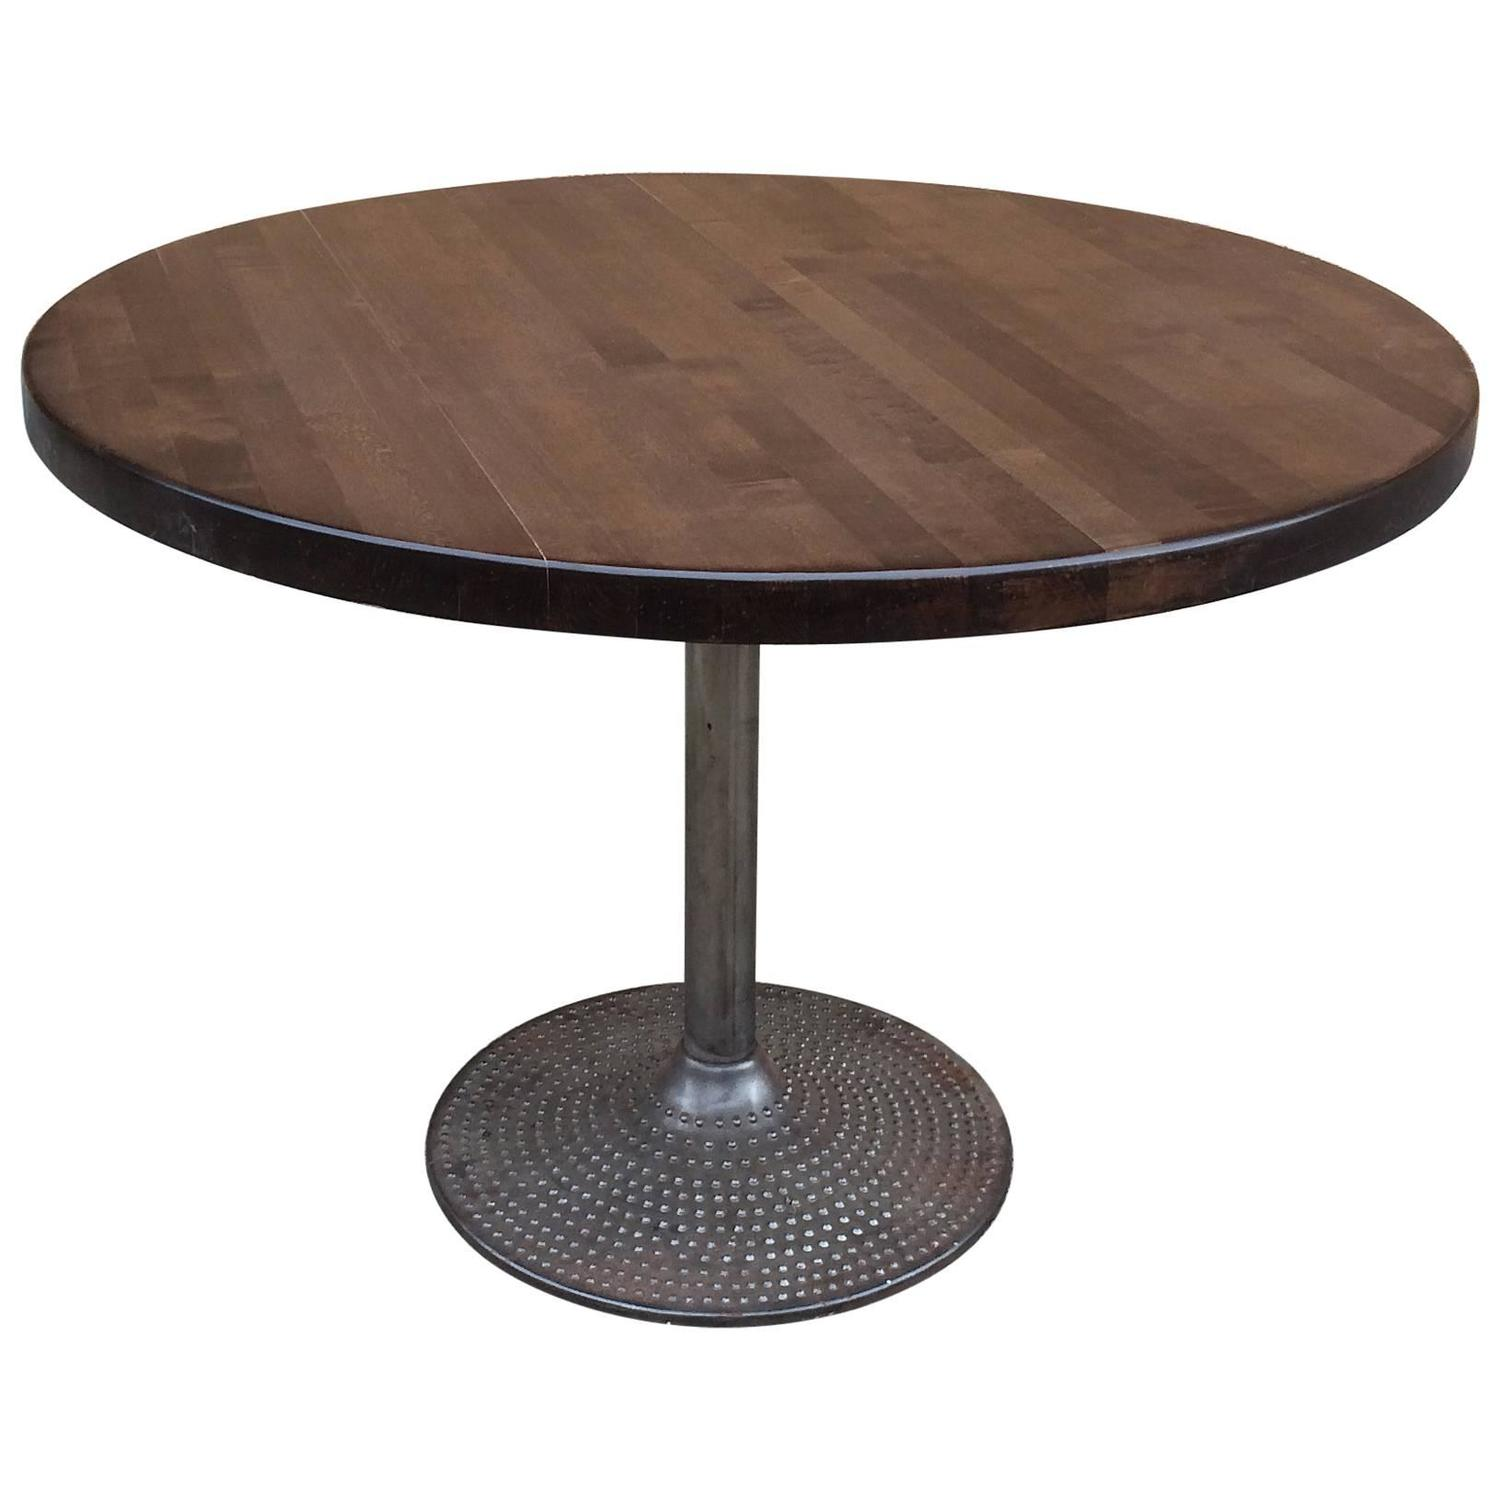 Round Ebonized Maple And Cast Iron Industrial Dining Table